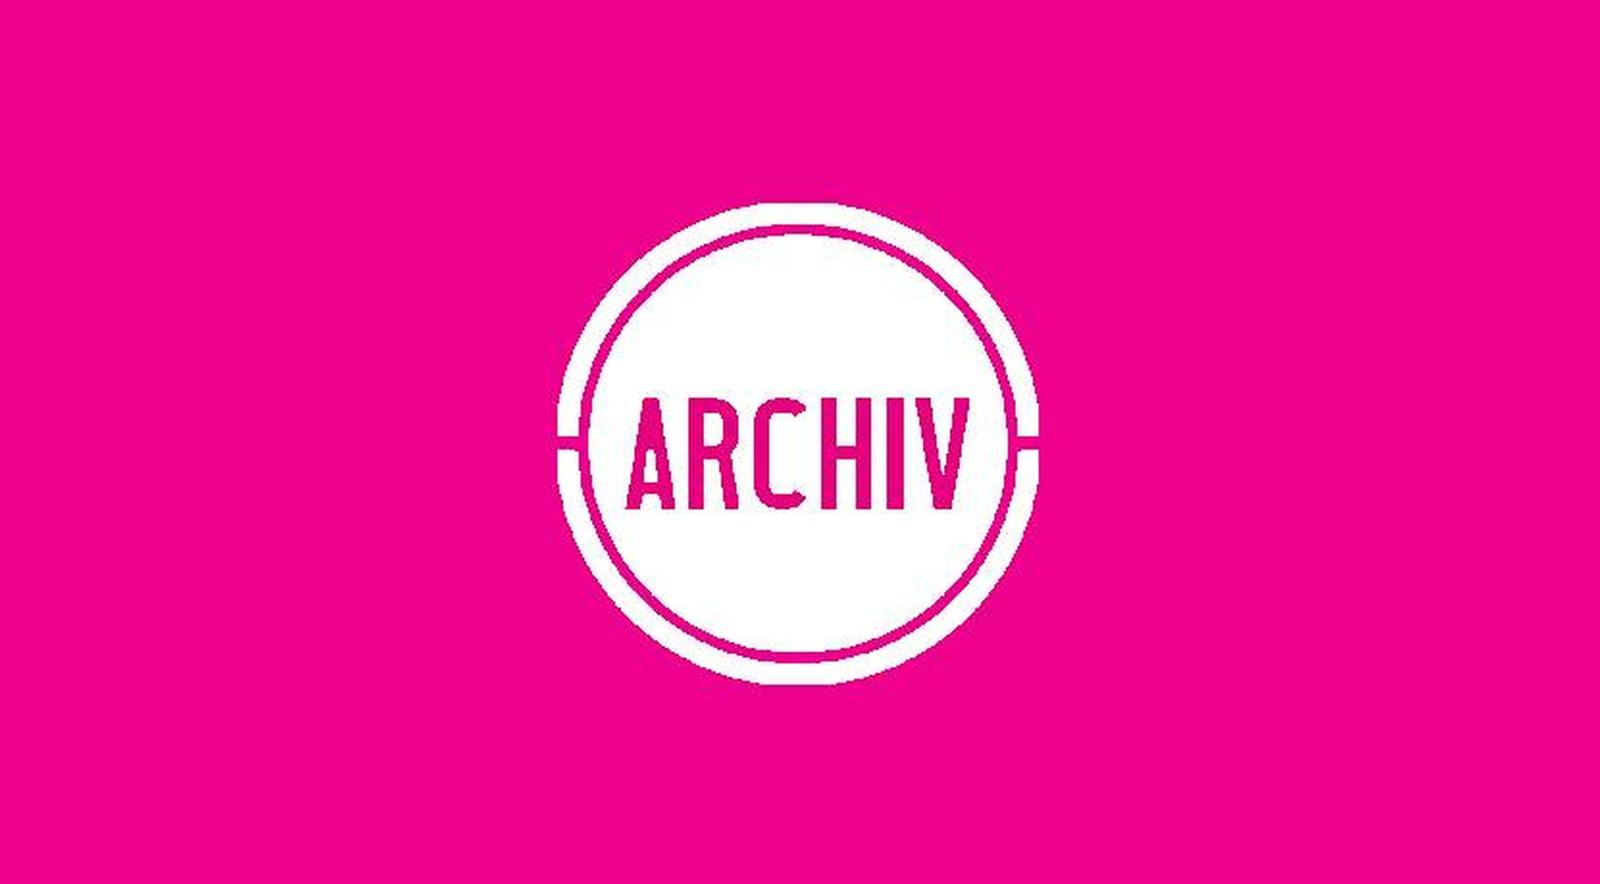 Rodeo - Archiv